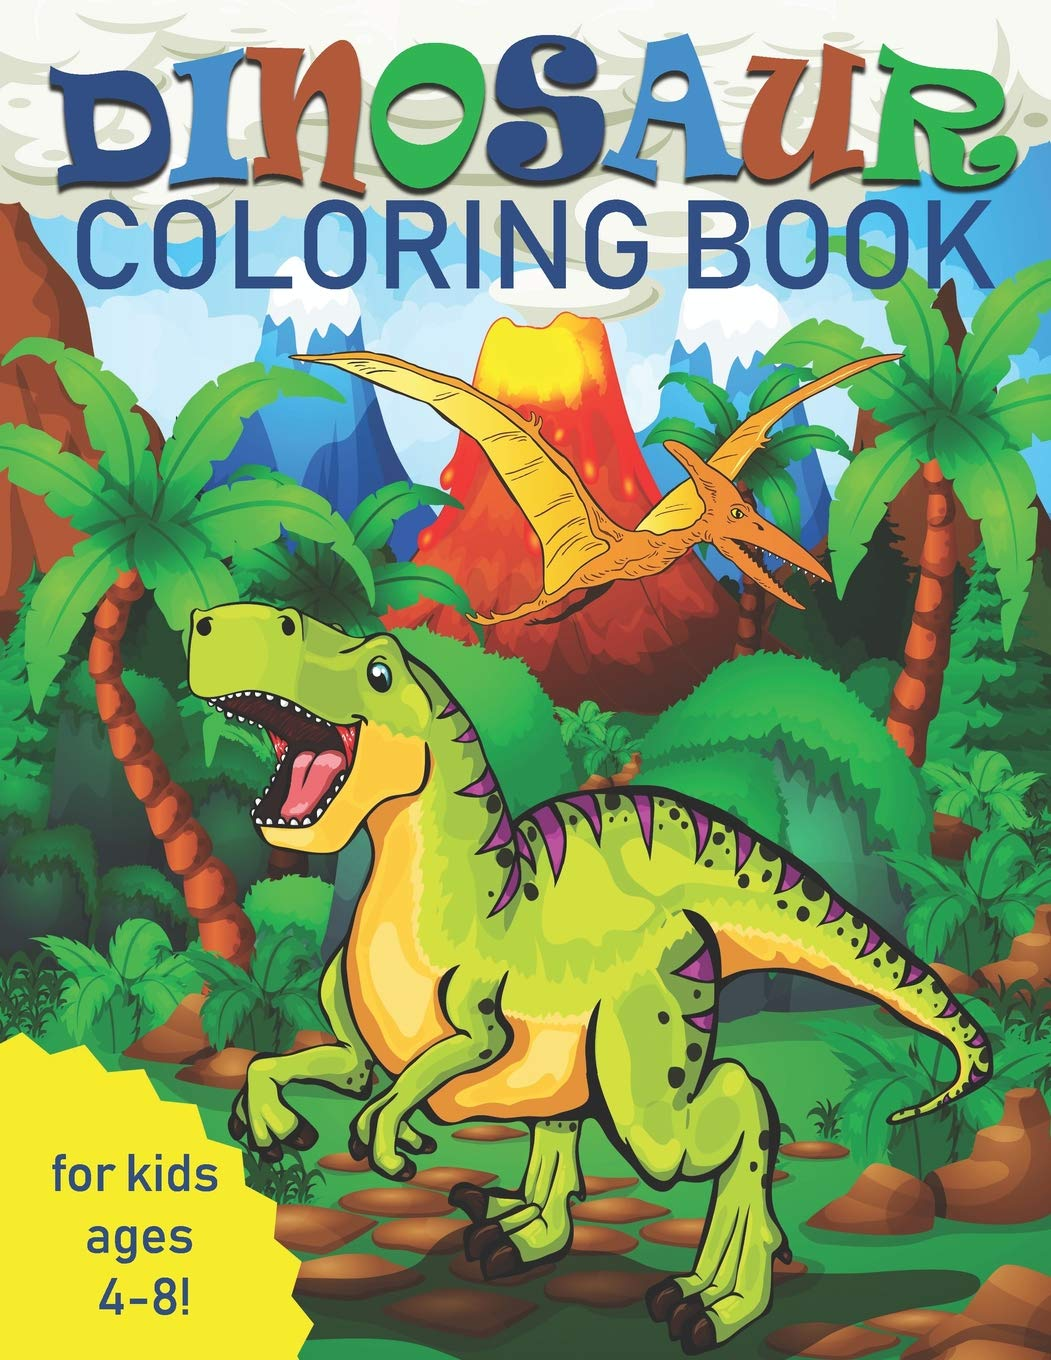 Dinosaur Coloring Book For Kids Great Gift For Boys Girls Ages 4 8 Coloring Two Hoots 9781090454676 Amazon Com Books